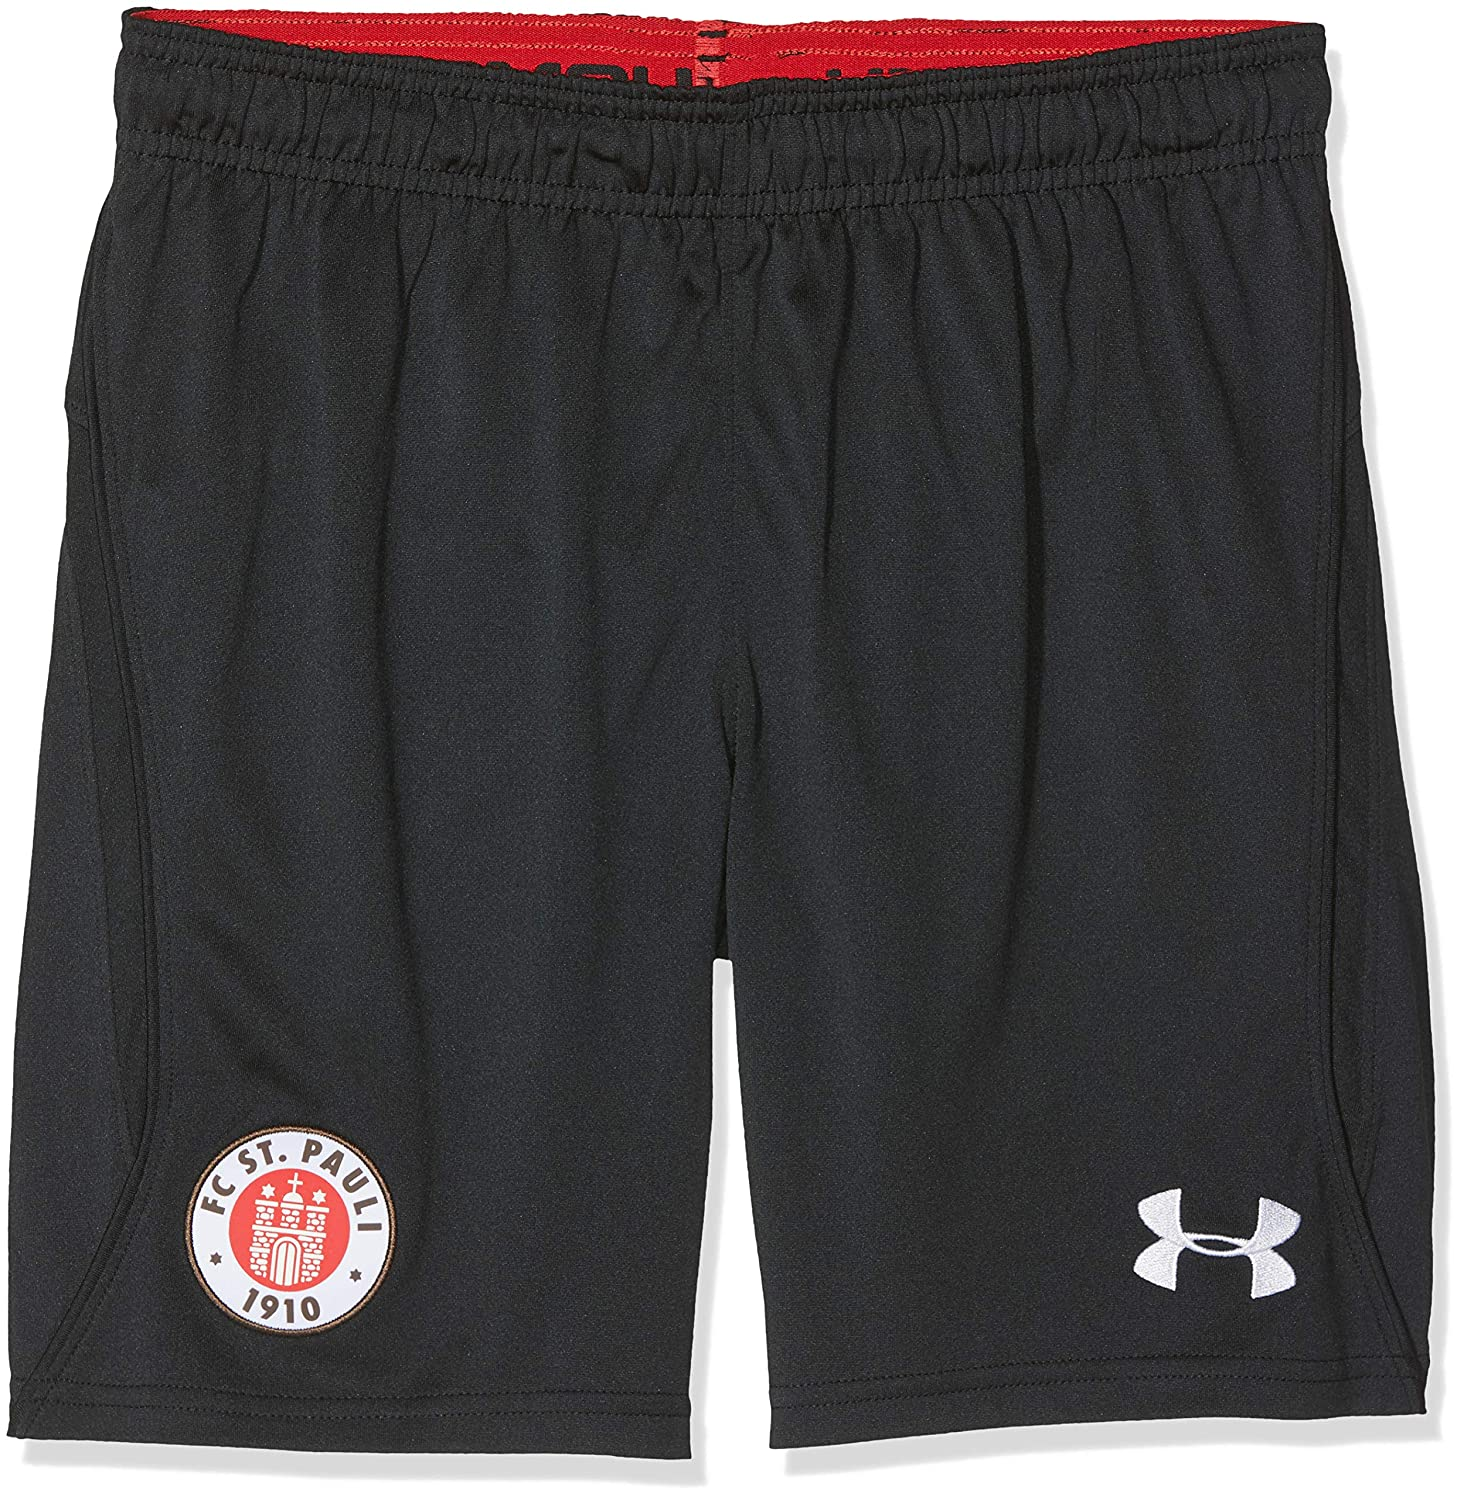 Under Armour St Pauli 3rd Junior Short 2018/2019